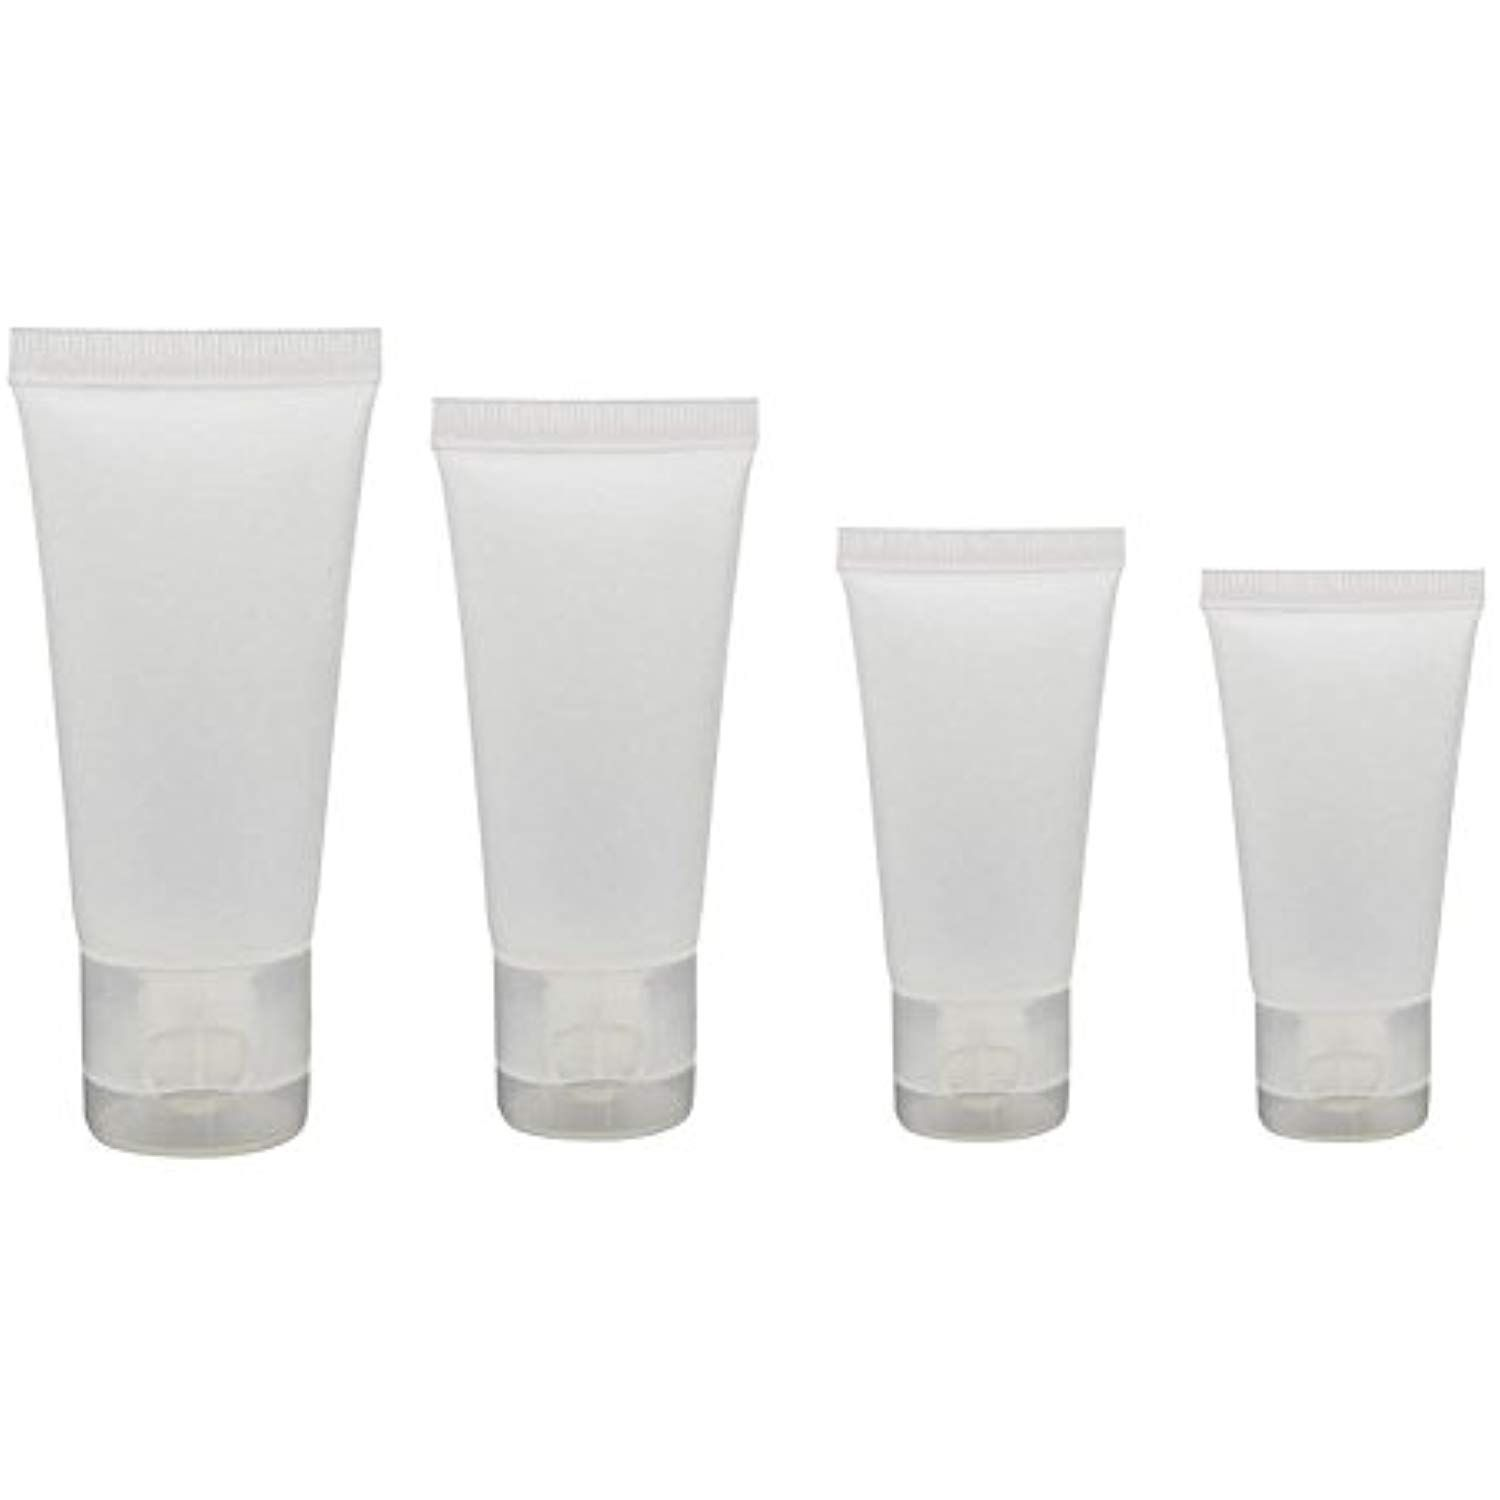 ac4b7a1b270a 20PCS Transparent Empty Refillable Plastic Packing Sample Soft Tubes ...